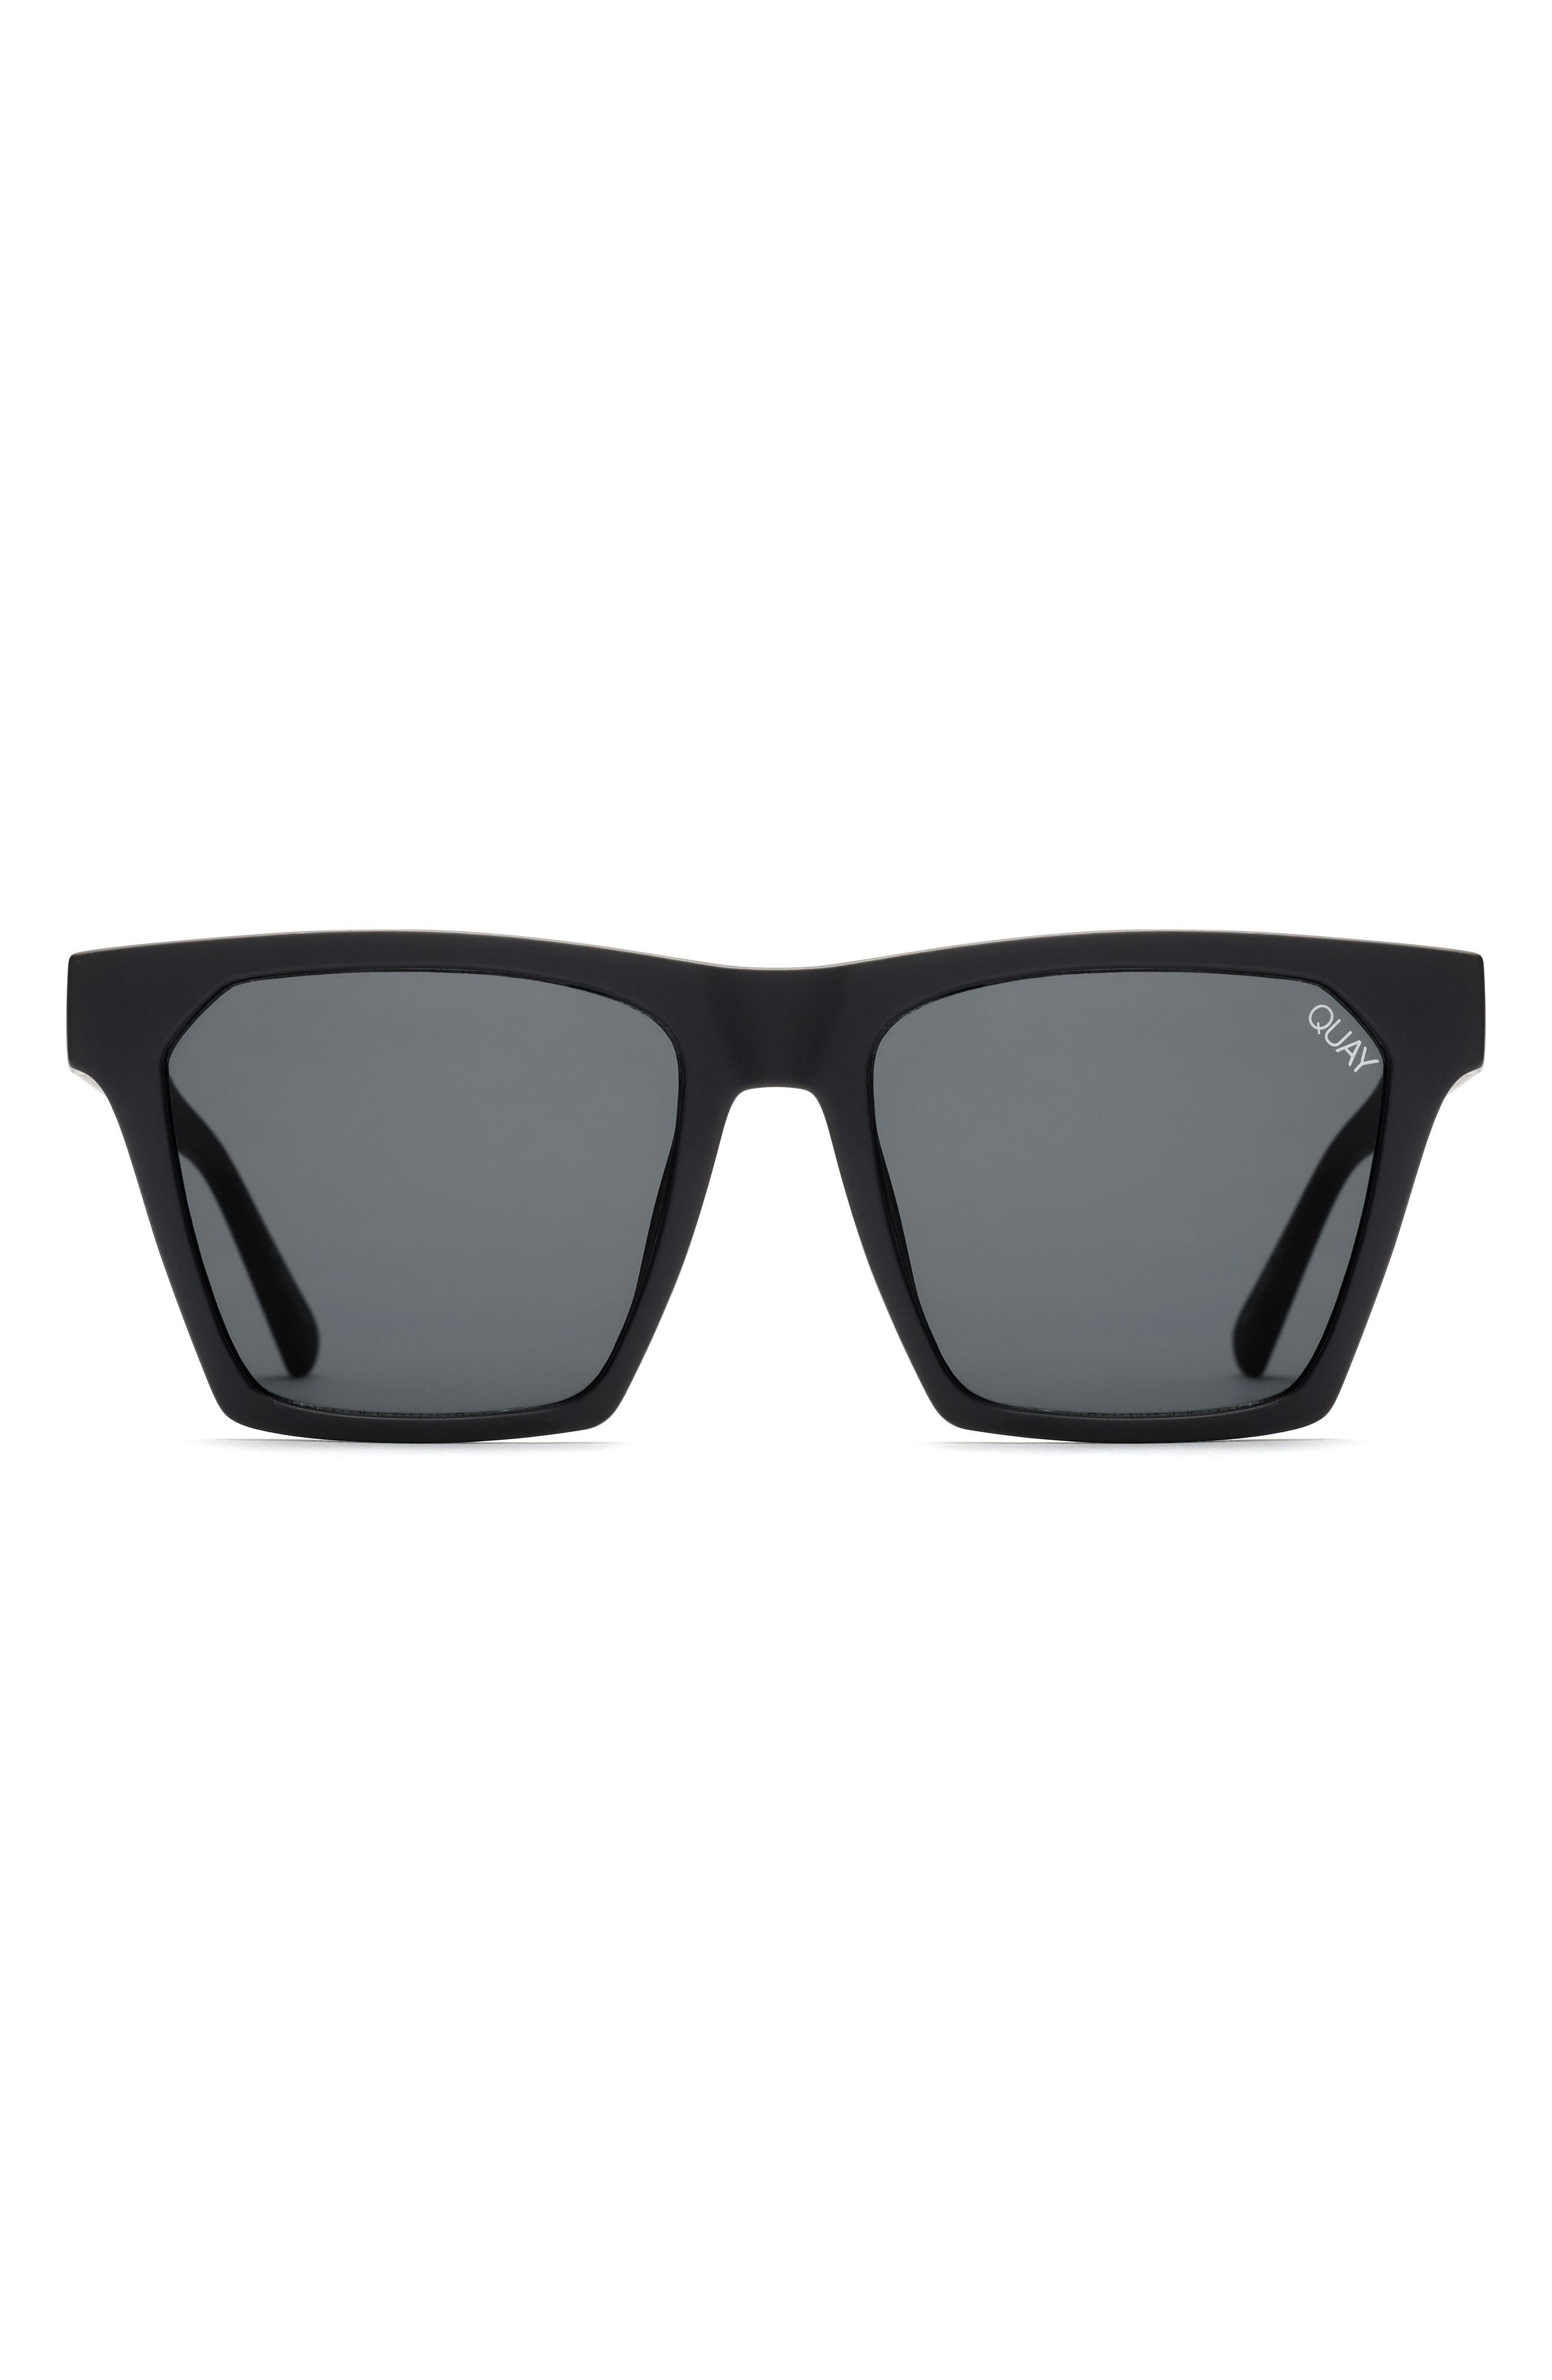 x Missguided Alright 55mm Square Sunglasses,                             Alternate thumbnail 4, color,                             001